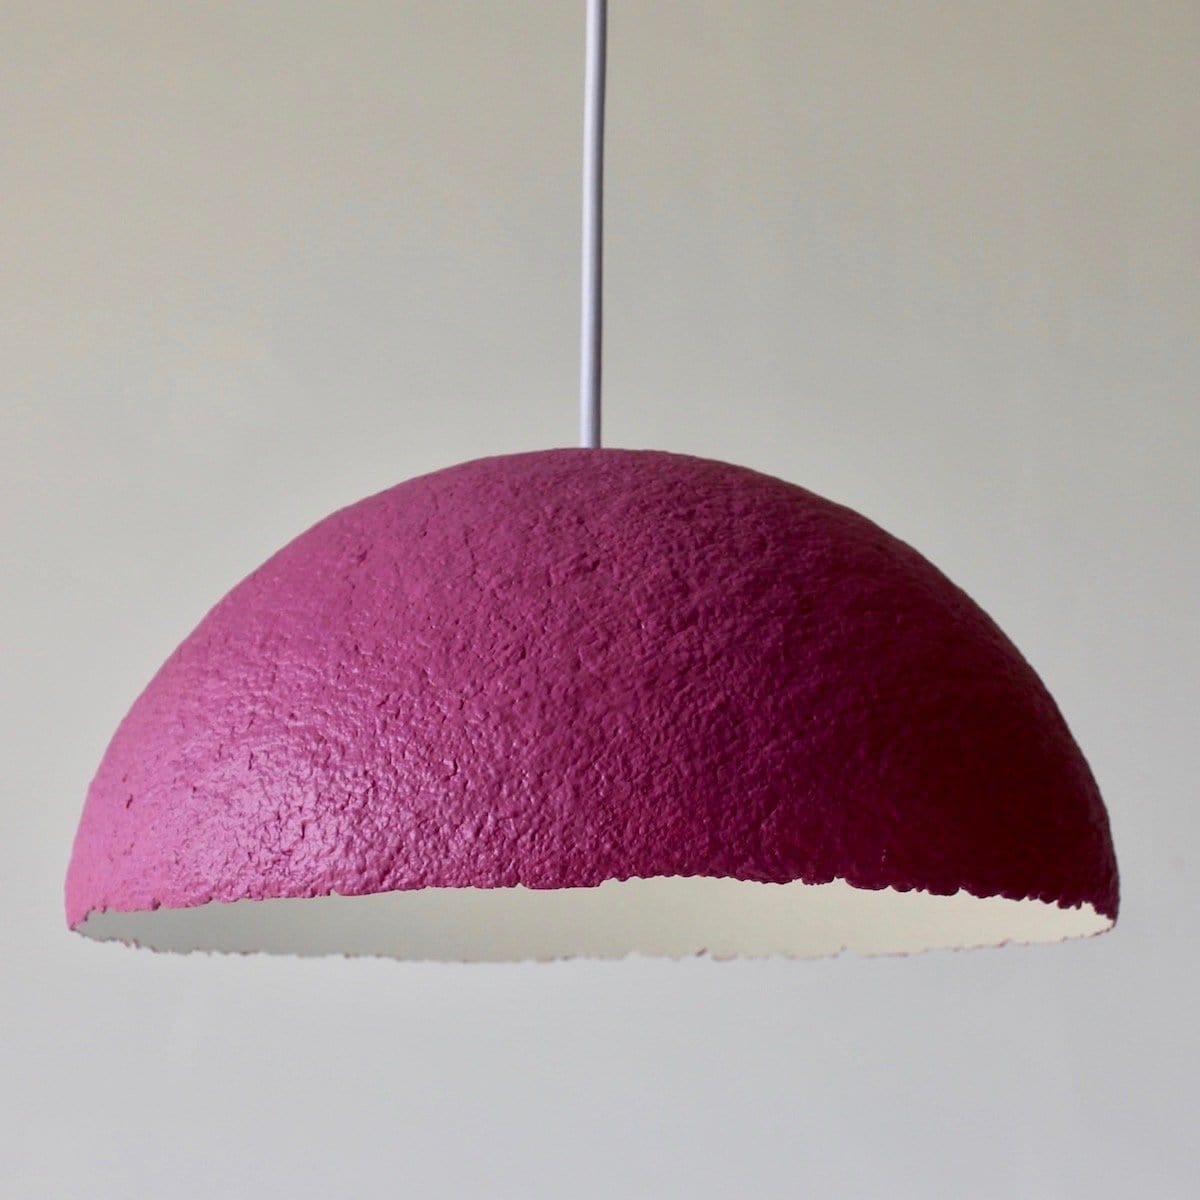 Lunula Pendant - Hibiscus by Ode to Elma | Shop Lighting | Greenhouse Interiors